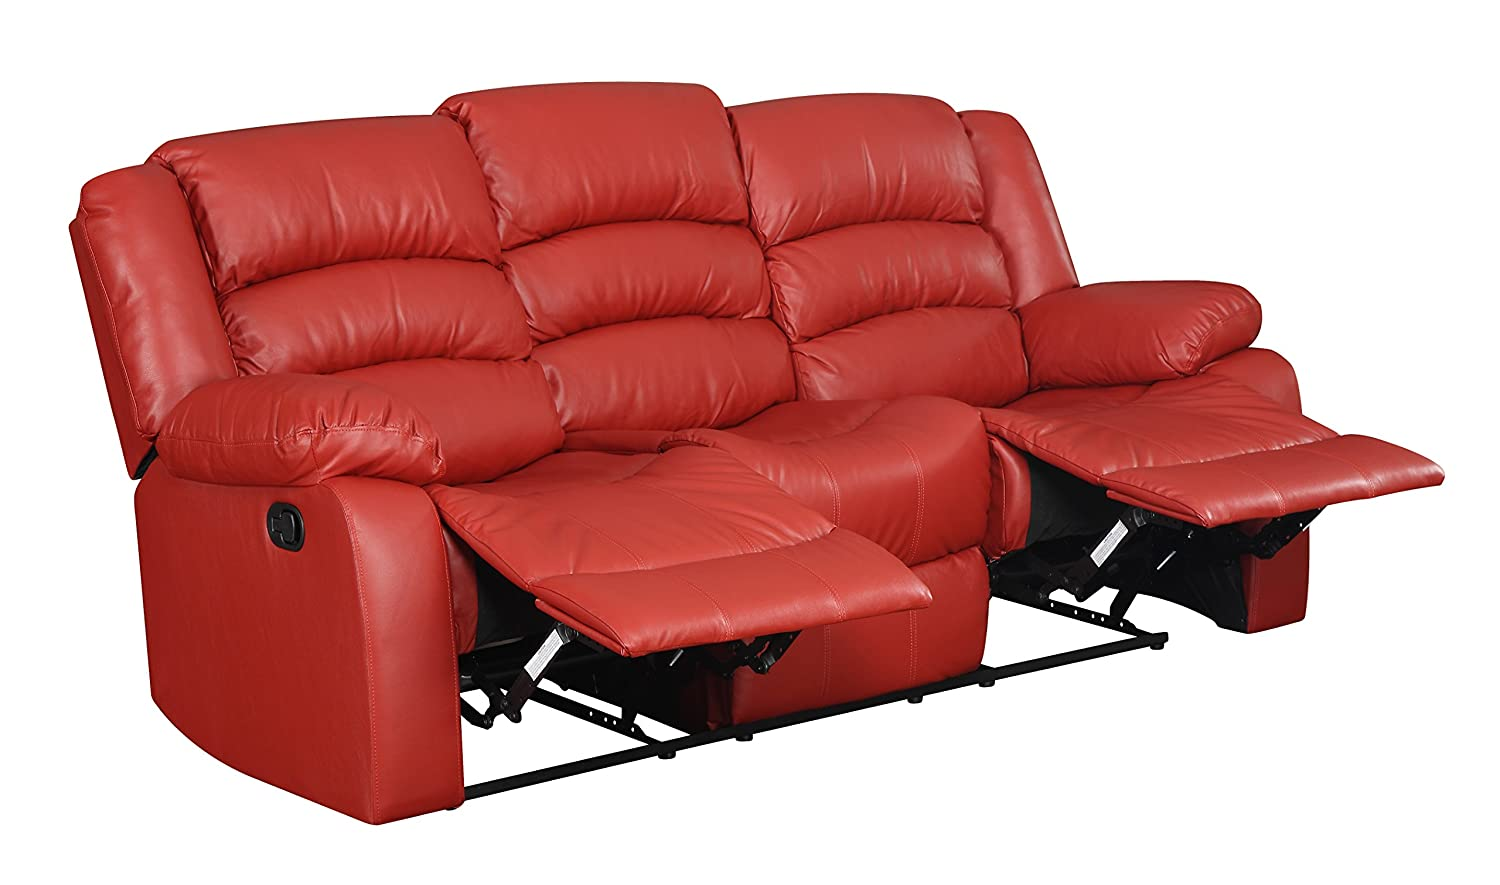 Glory Furniture G949-RS Reclining Sofa - Red